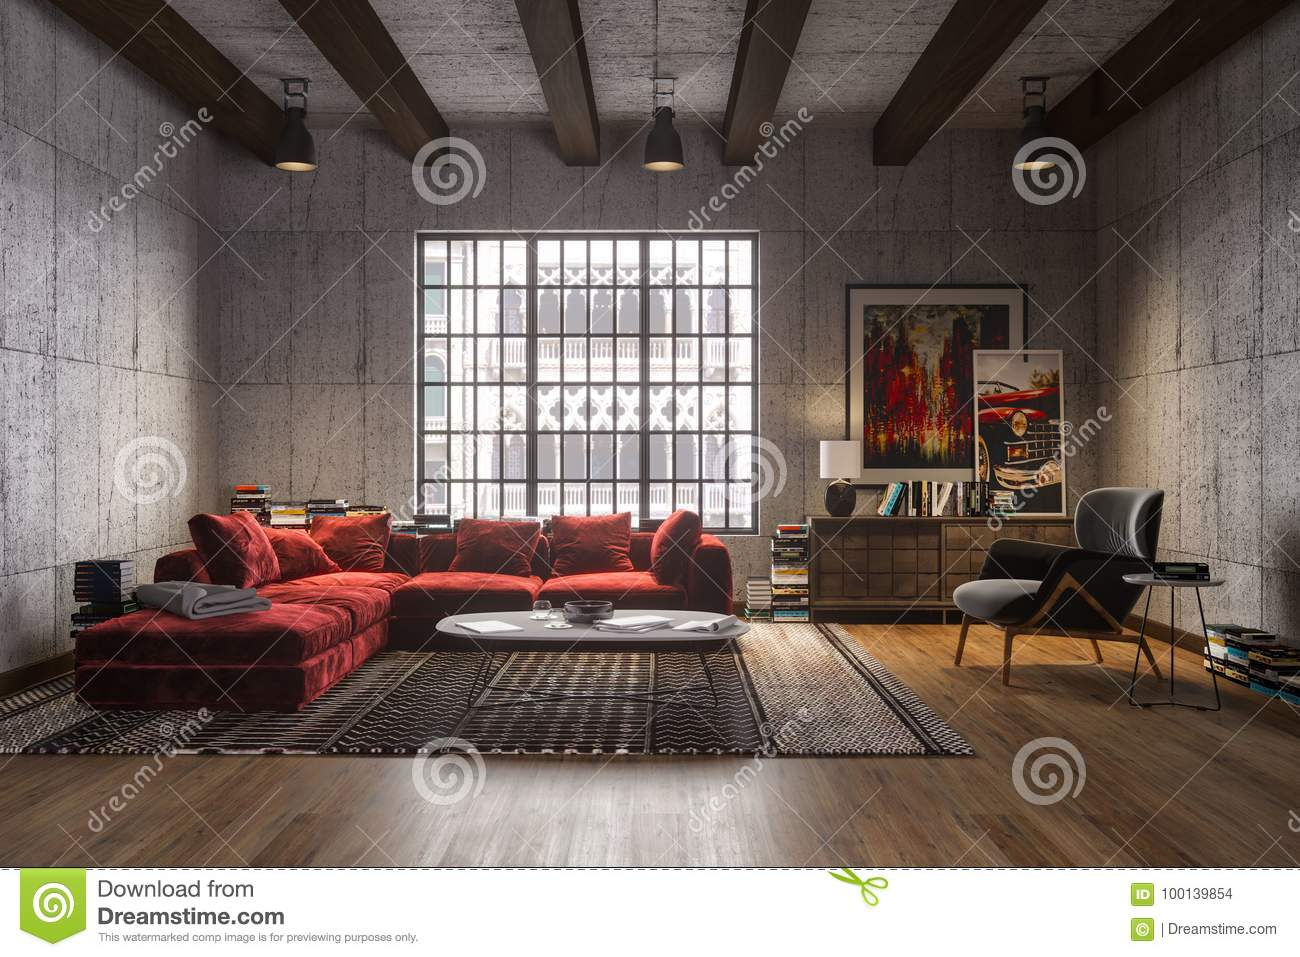 image alamy photos images stock velvet photo red couch sofa